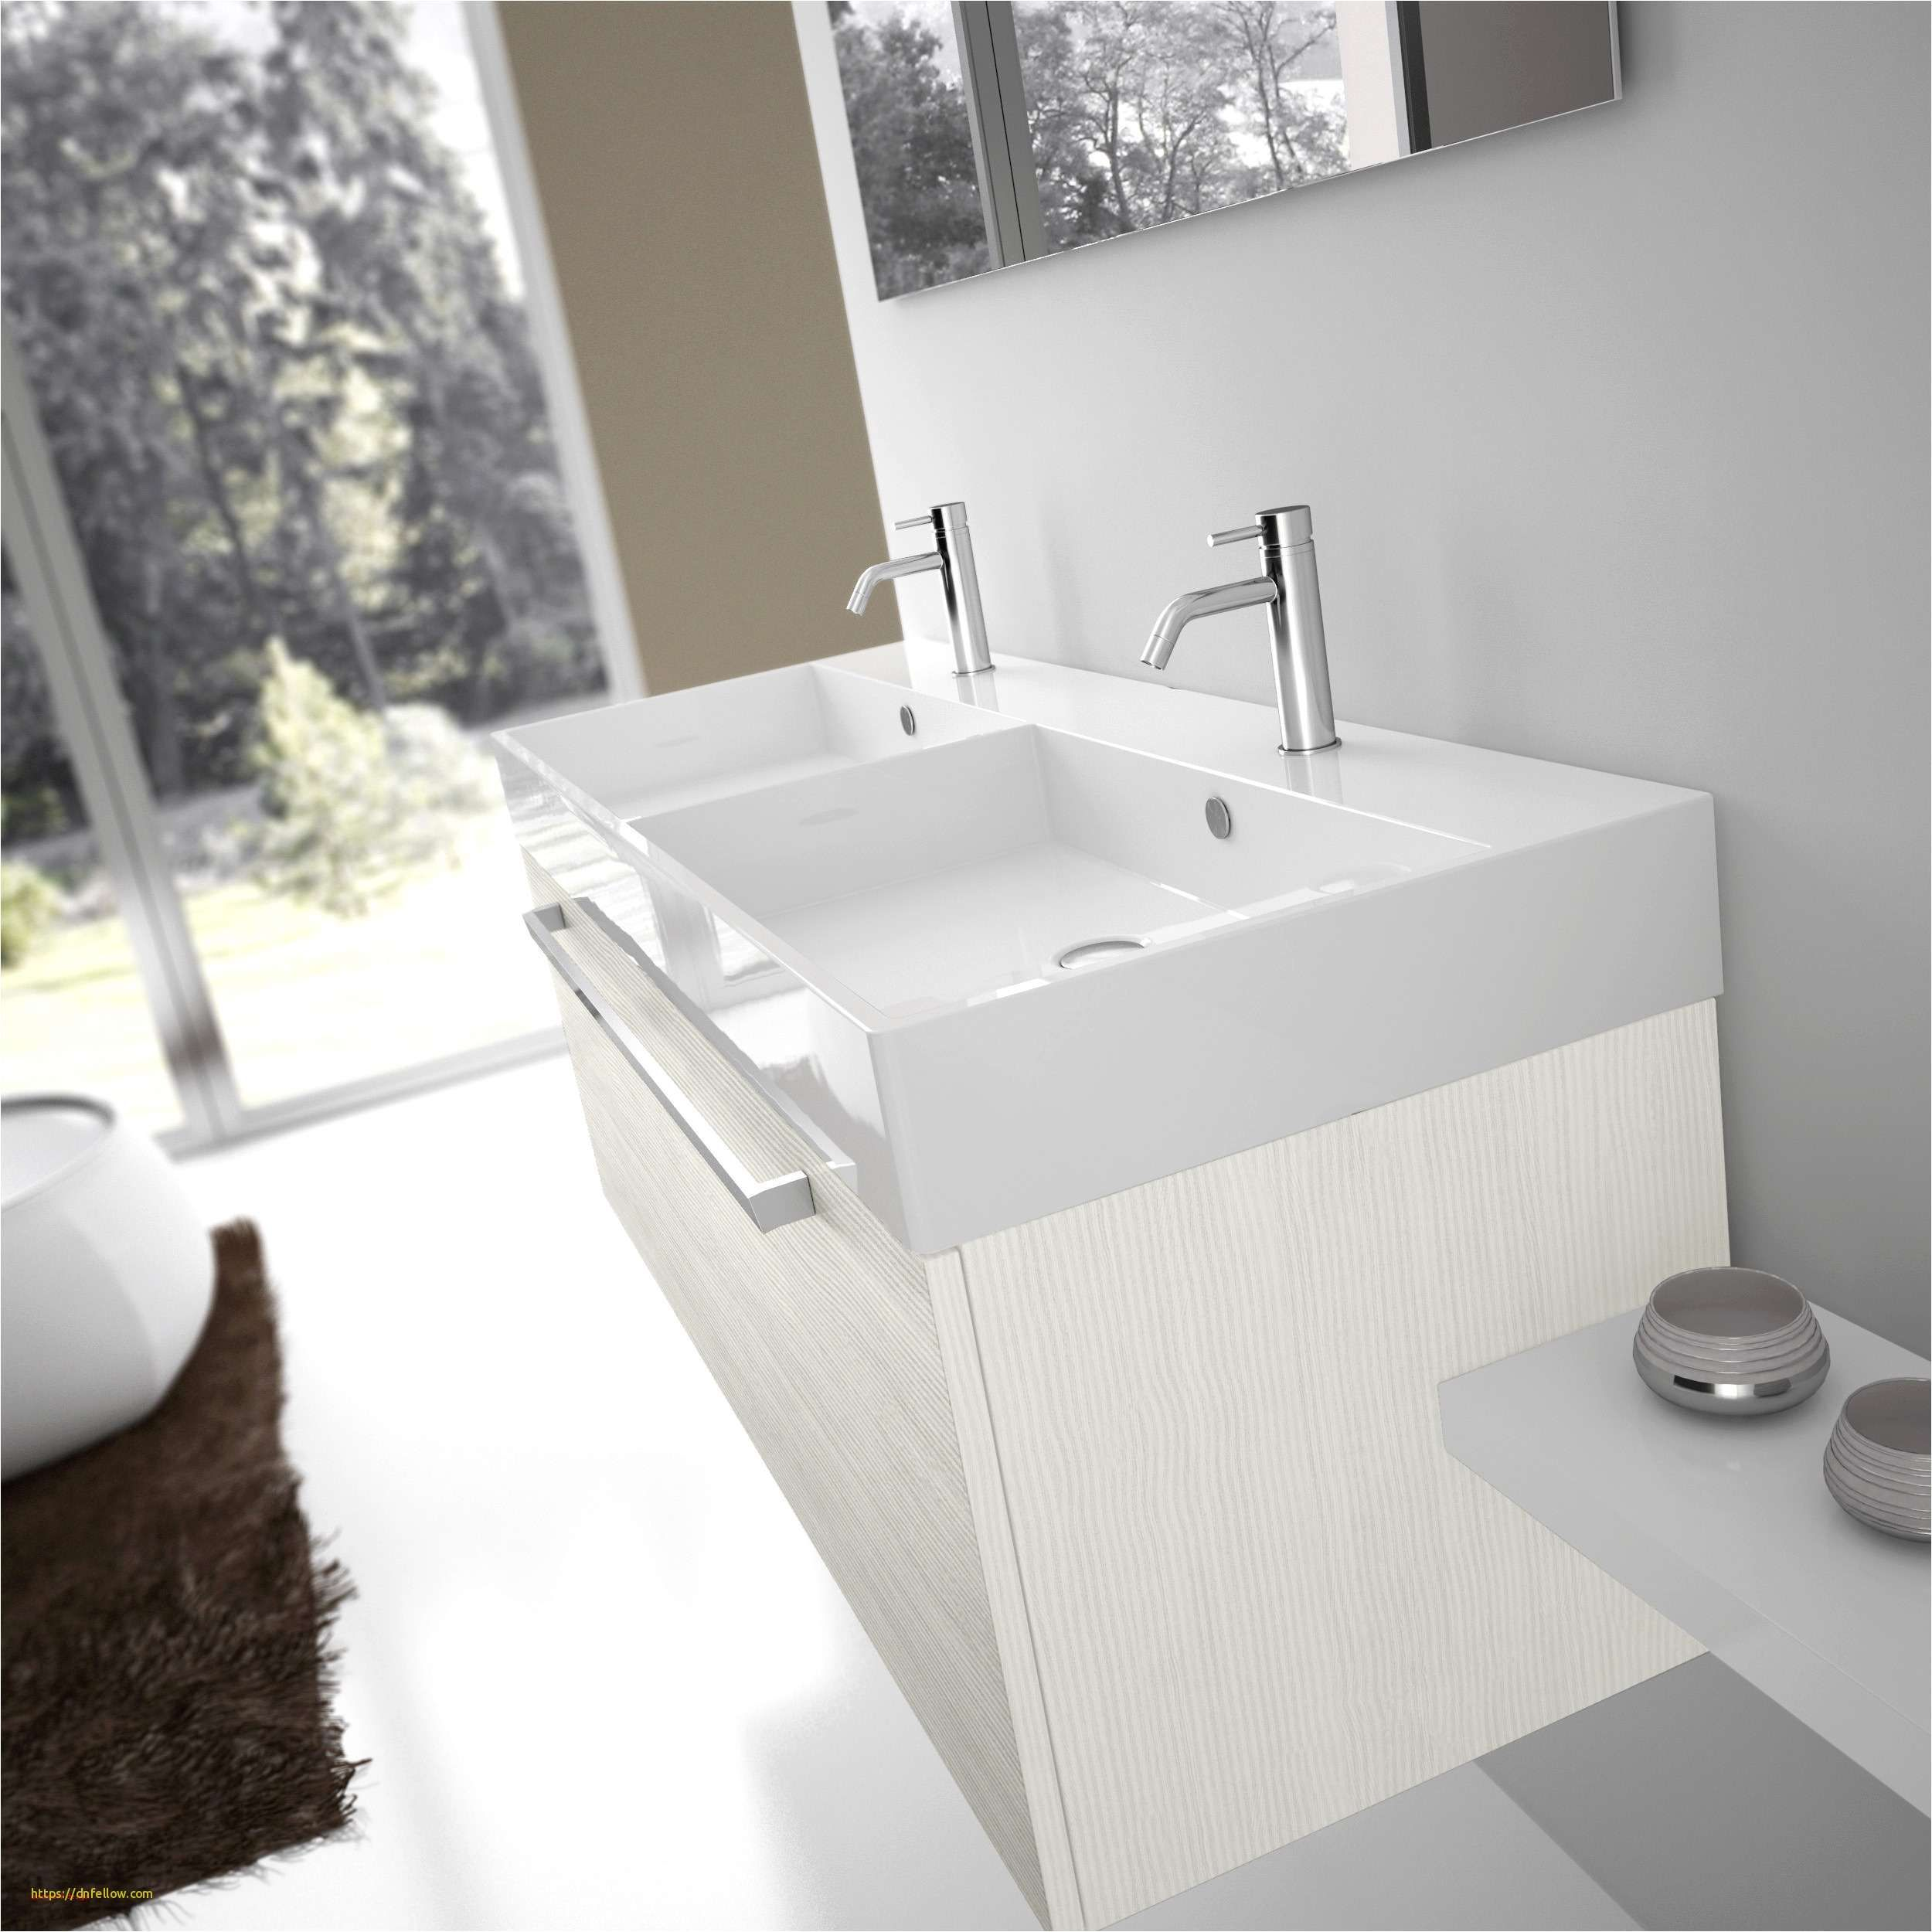 Elegant Bathroom Design 8x8 Elegant Bathroom Design 8x8 - Welcome to ...